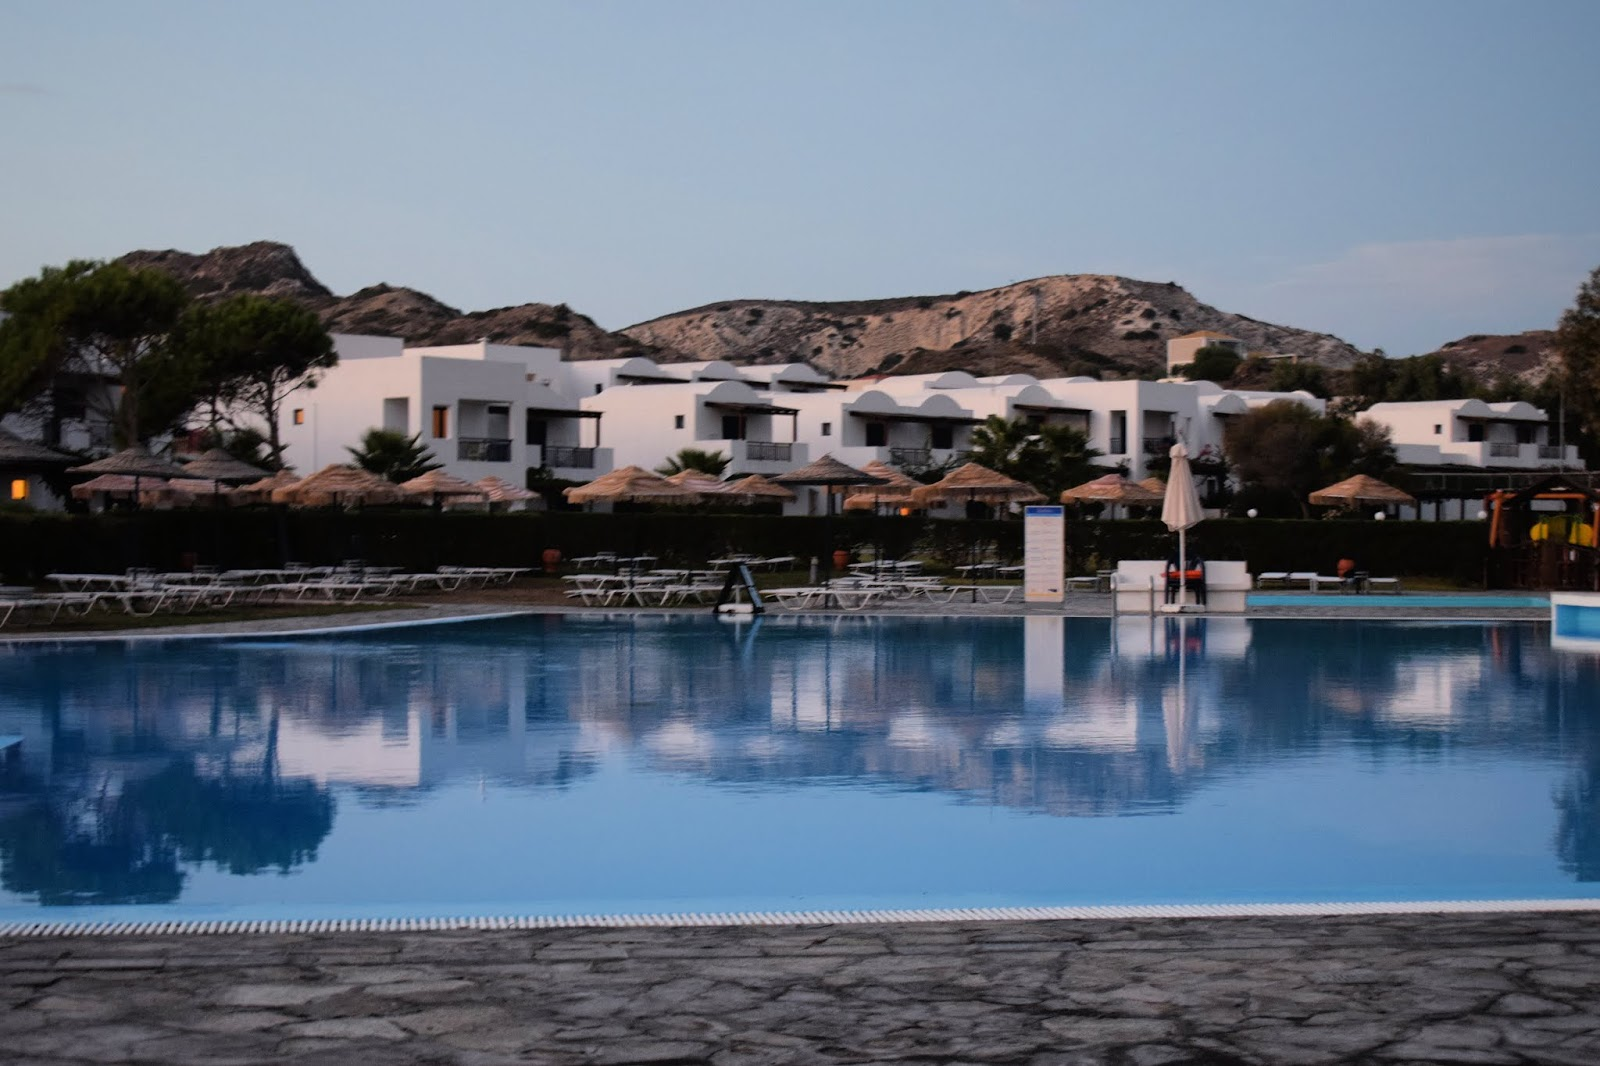 Lakitira resort and village Kardamena Kos